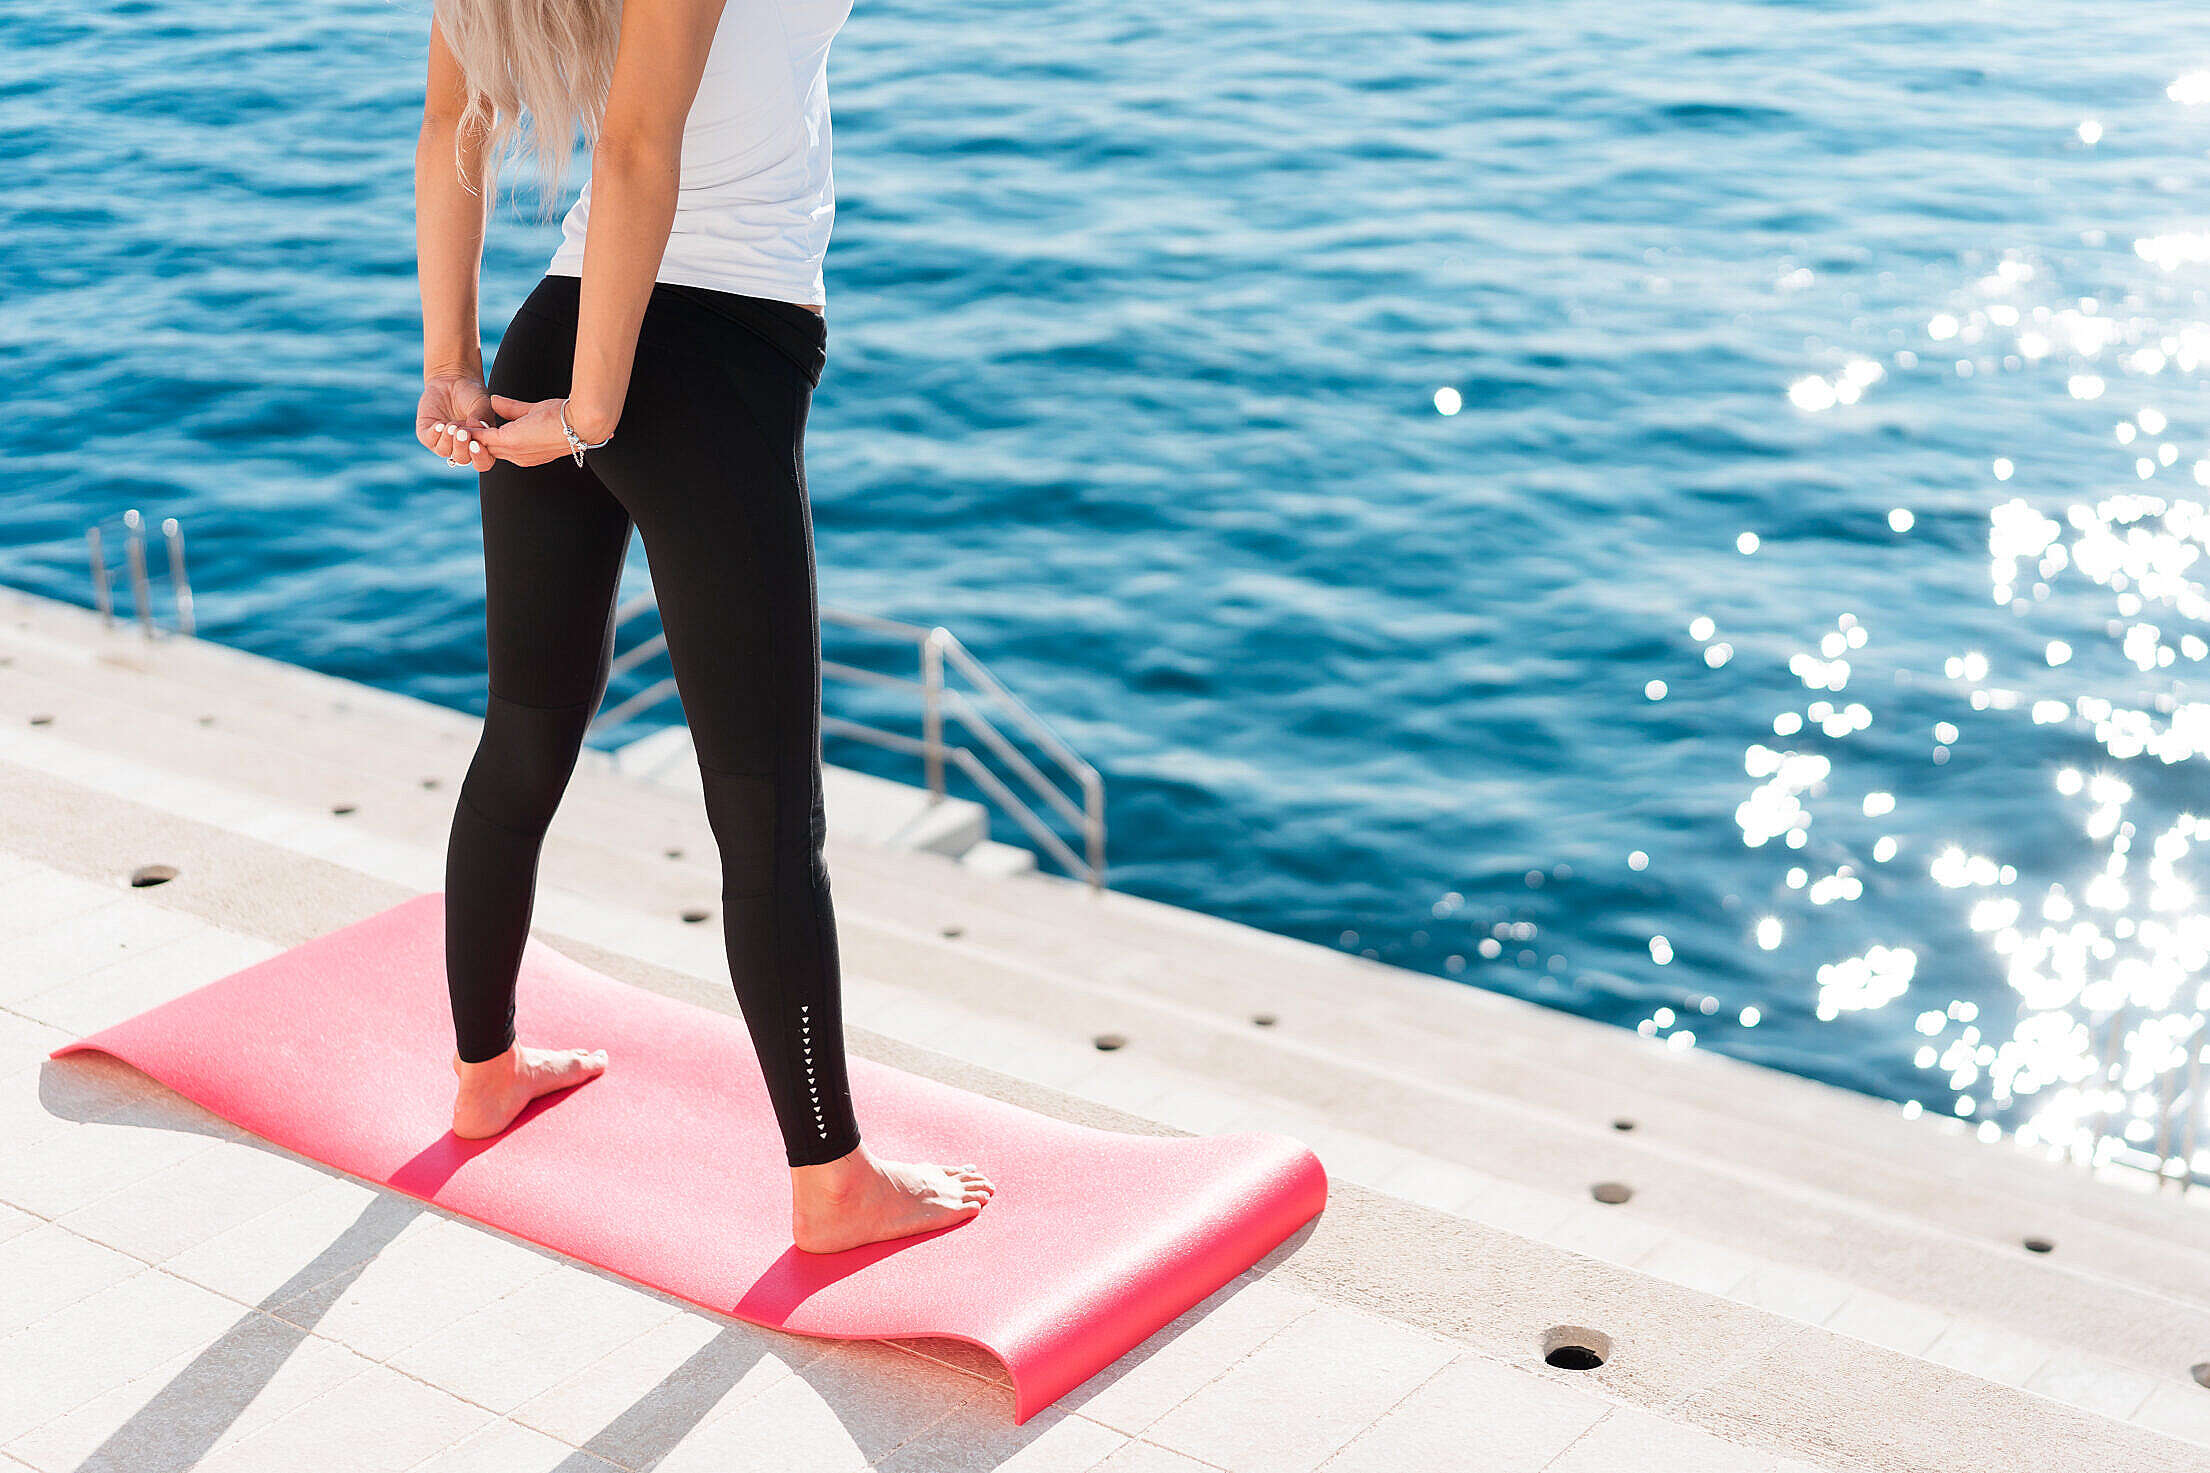 Fit Woman Stretching Her Body in Morning Yoga Routine Free Stock Photo